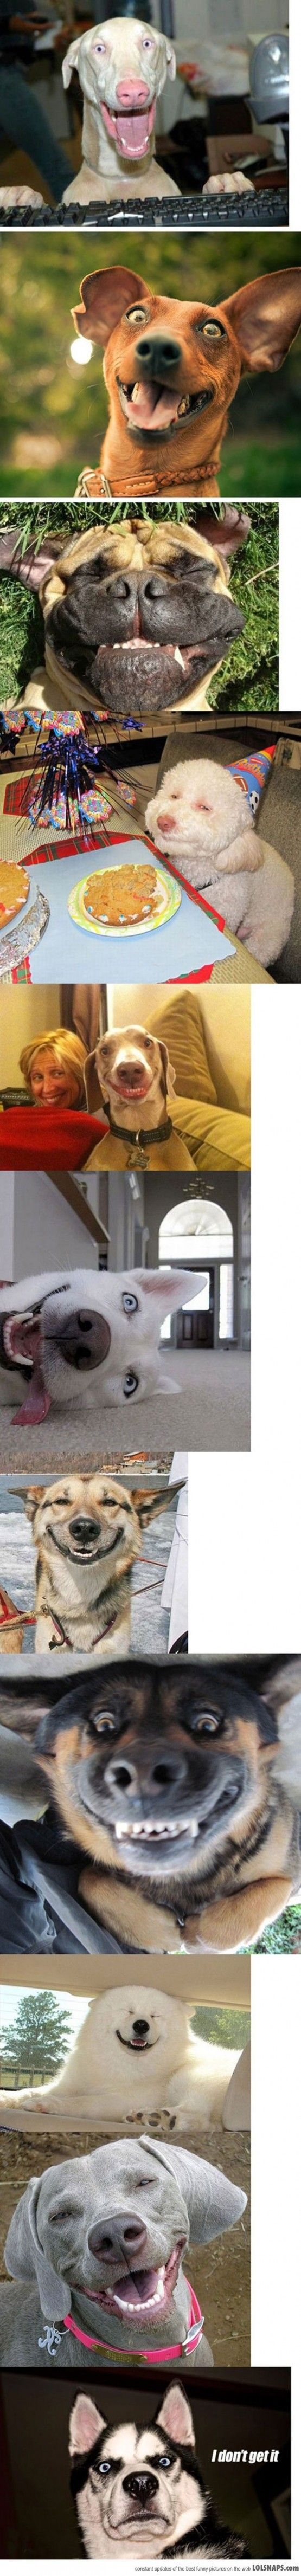 The happiest dogs of the internet. Do you get it?